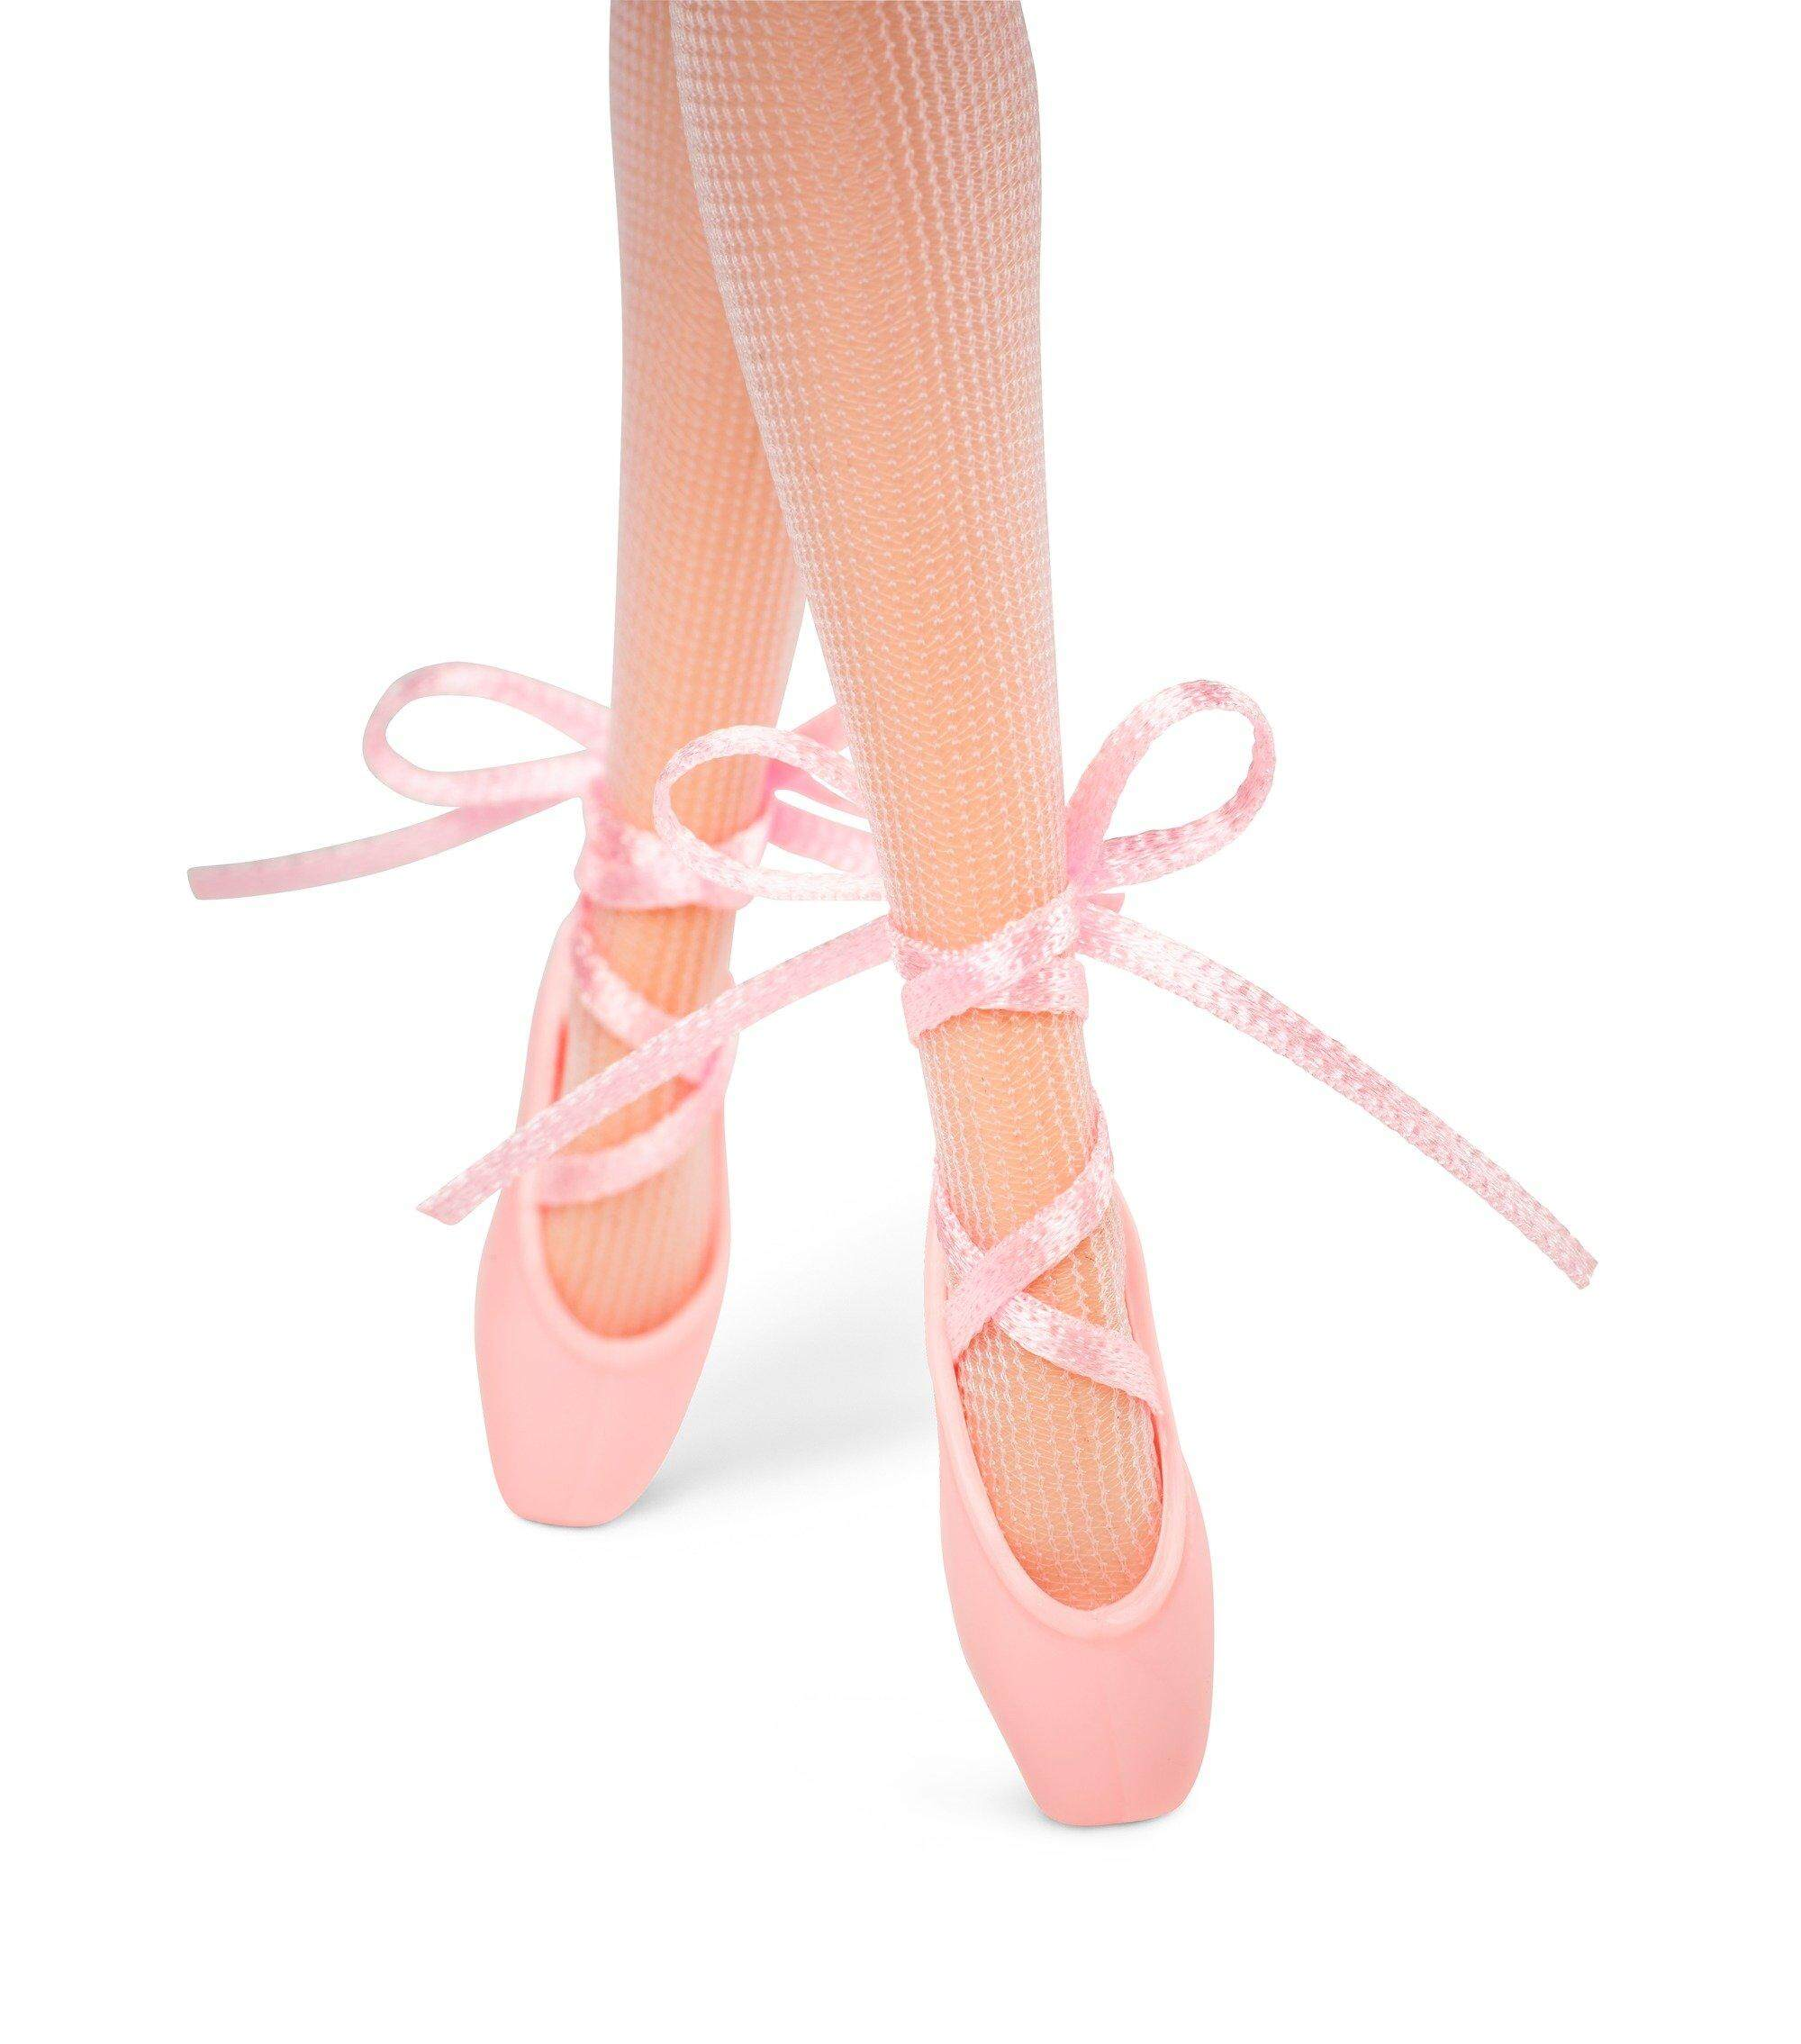 [BARBIE] Ballet Wishes Doll (6 yrs+) toys for girls